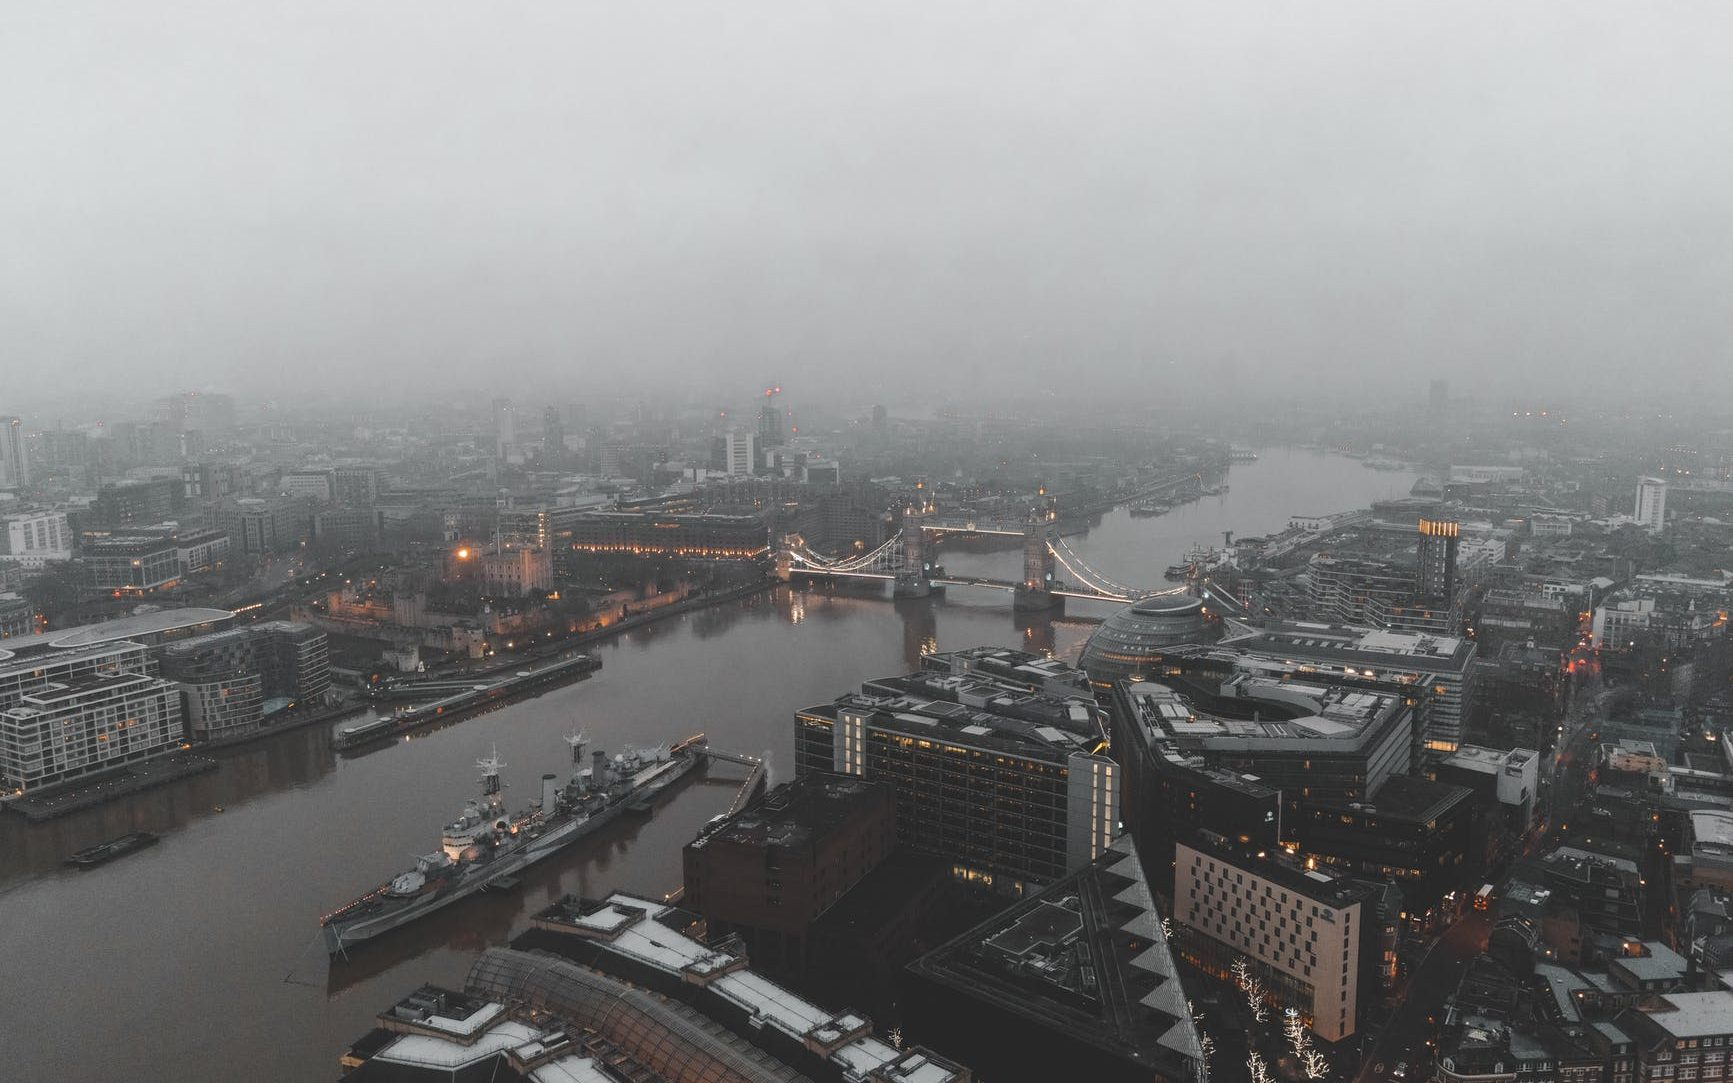 drone shot of cityscape under foggy weather